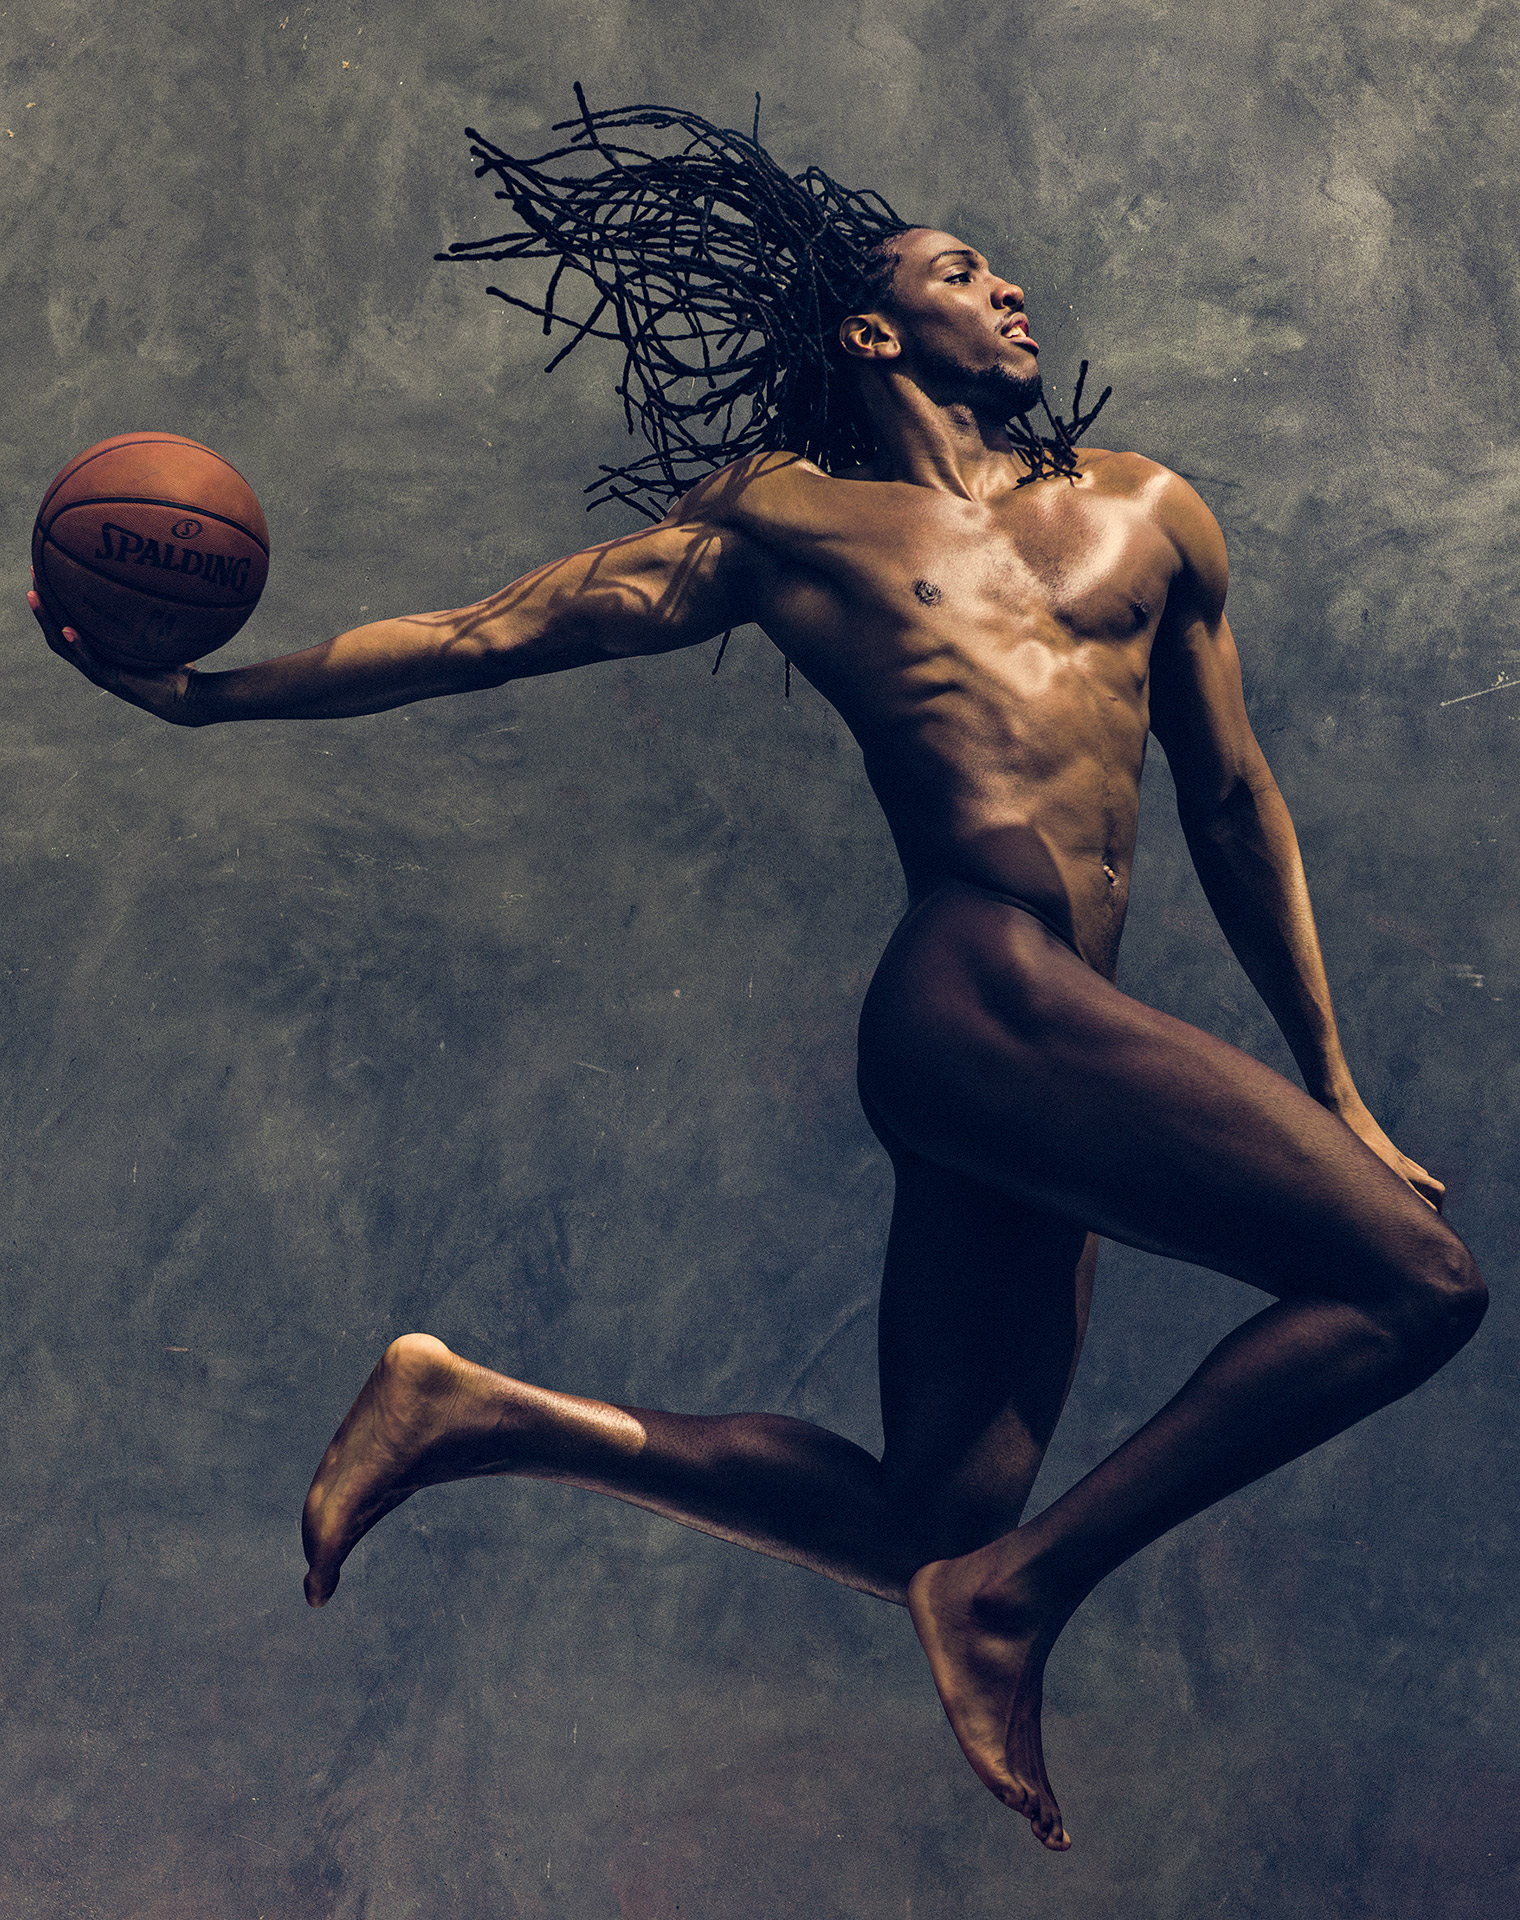 Kenneth Faried ESPN Body Issue Naked